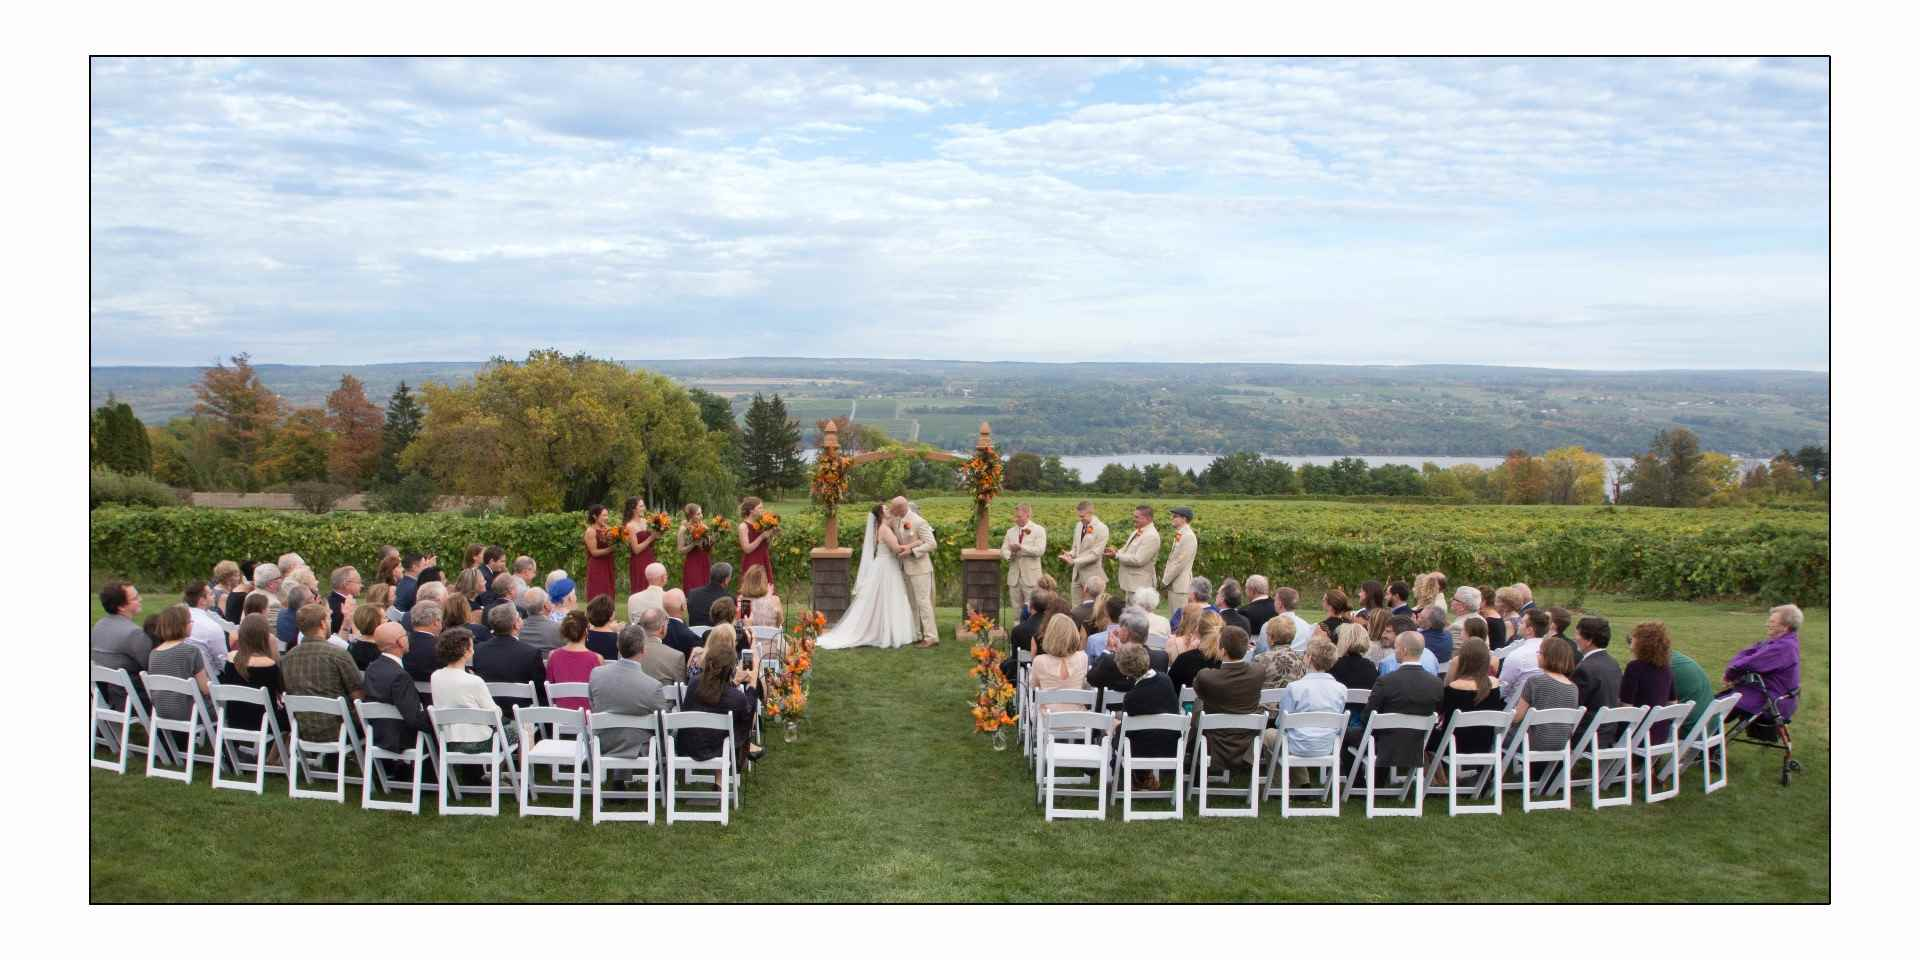 Finger Lakes Wedding Photographer, Winery Weddings, Glenora Wine Cellar Wedding Photographer